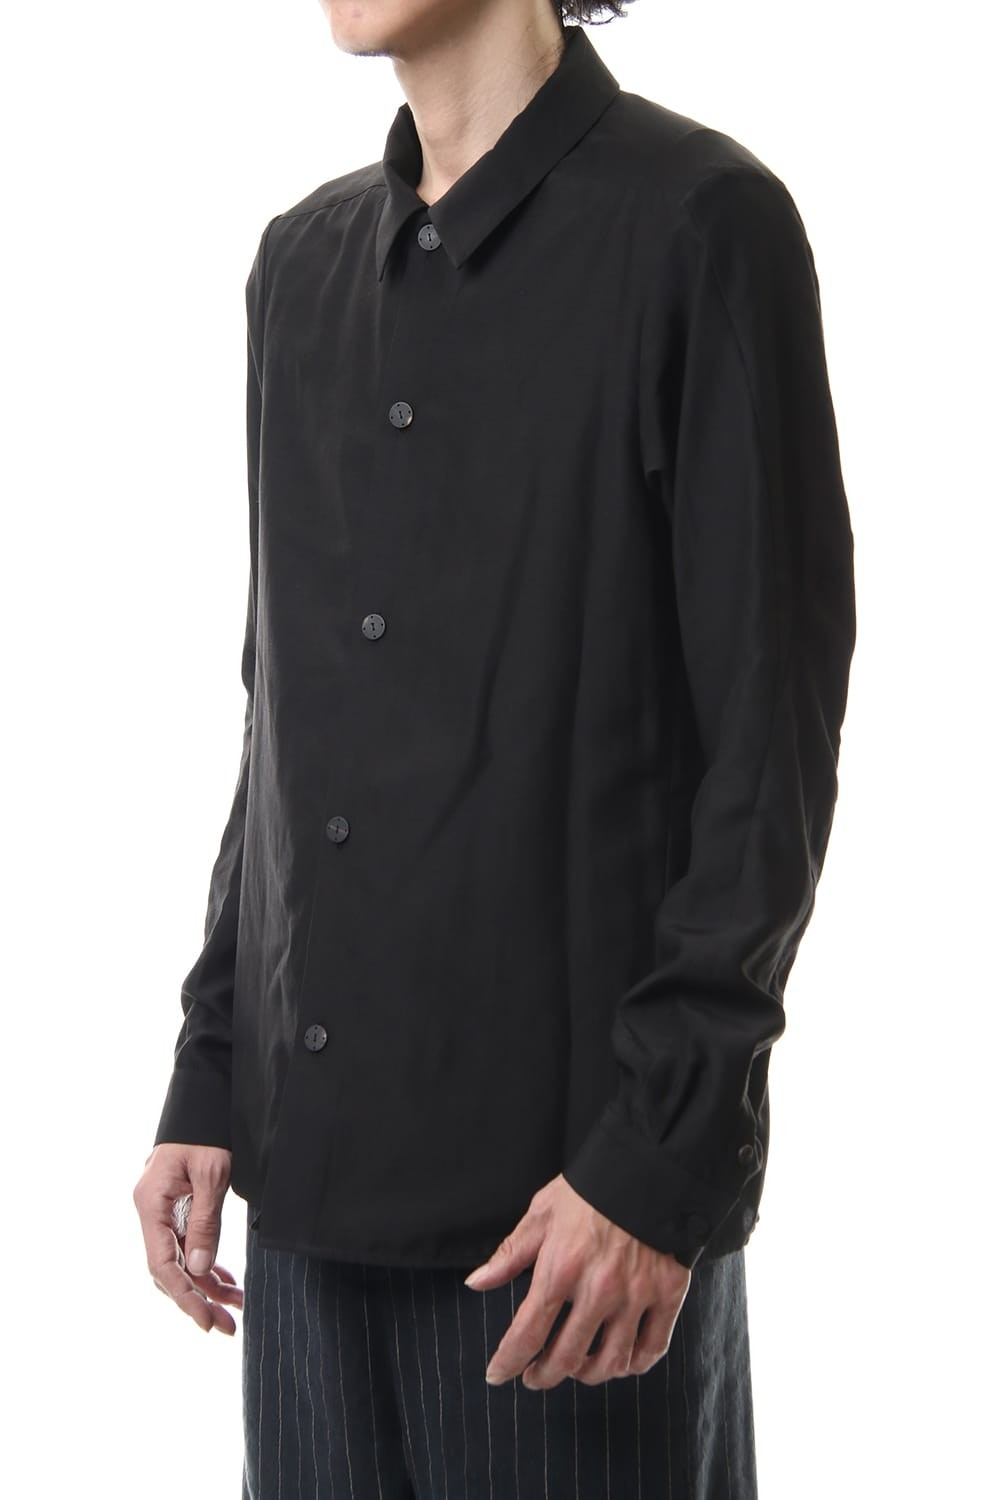 Open collar shirt silk tencel sandblast Black